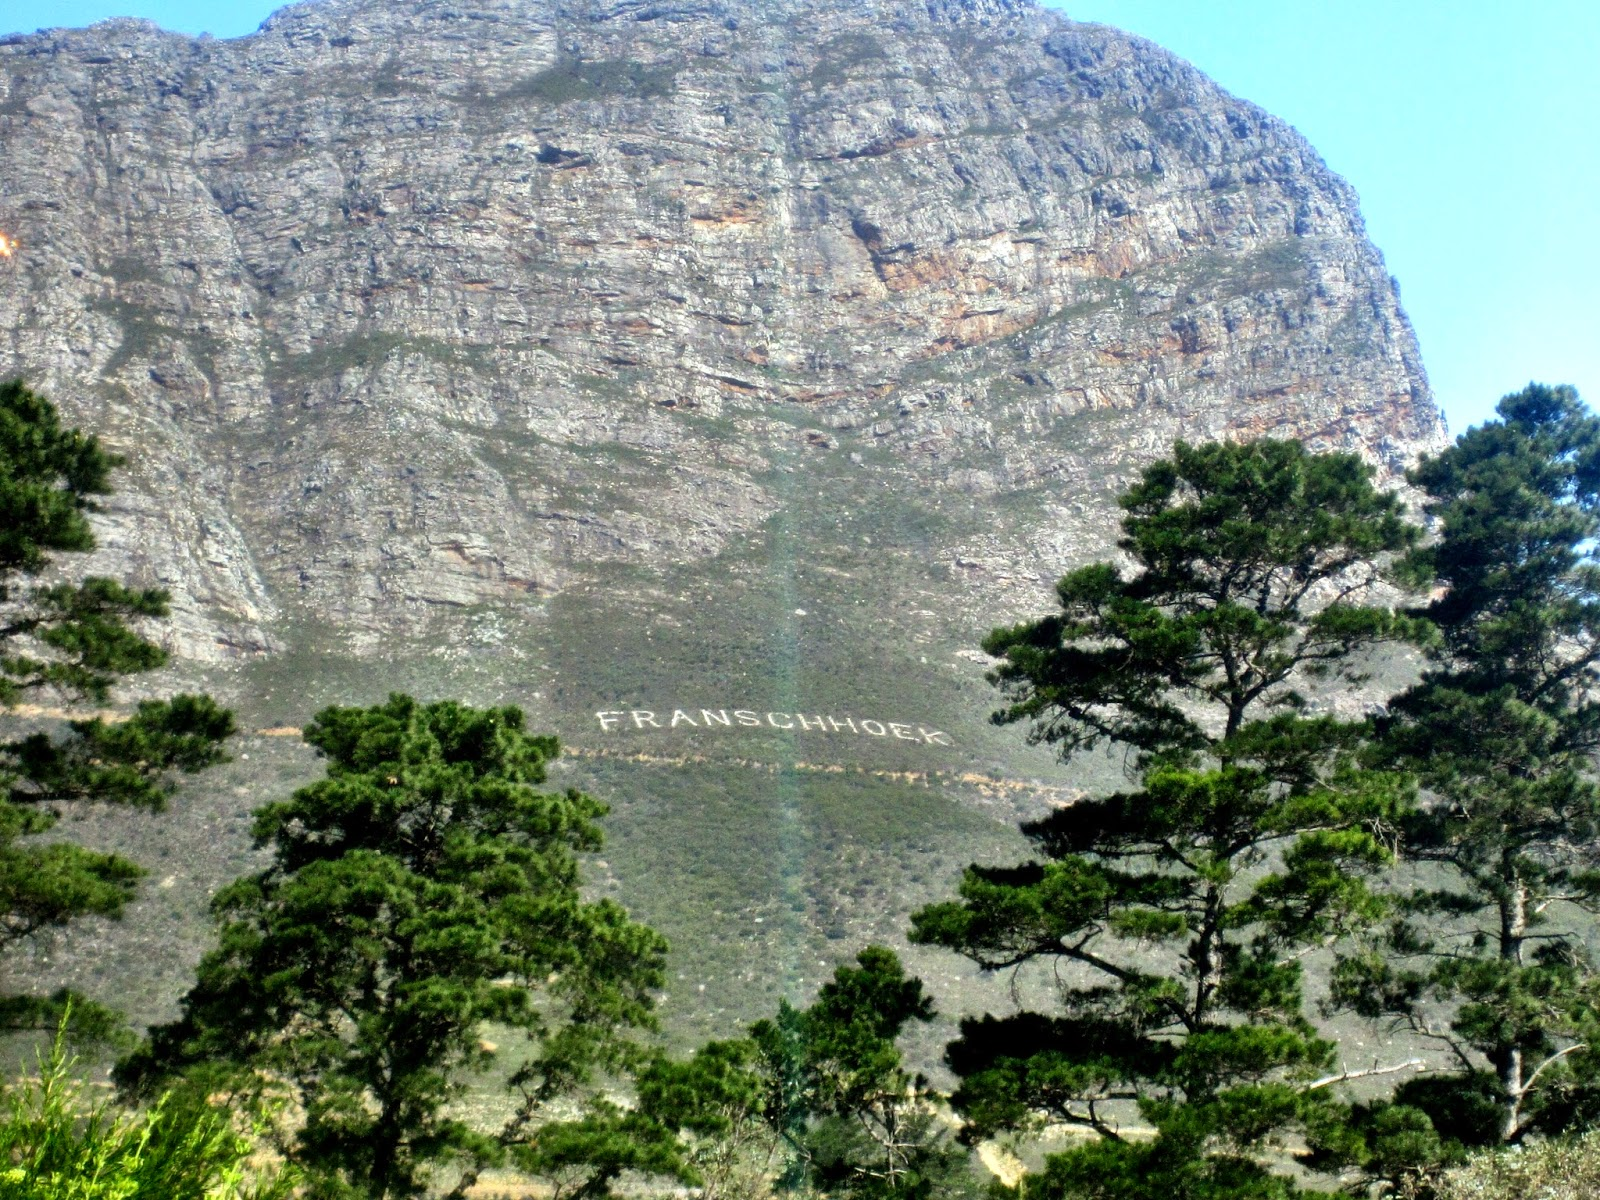 Franschhoek name carved into the mountain